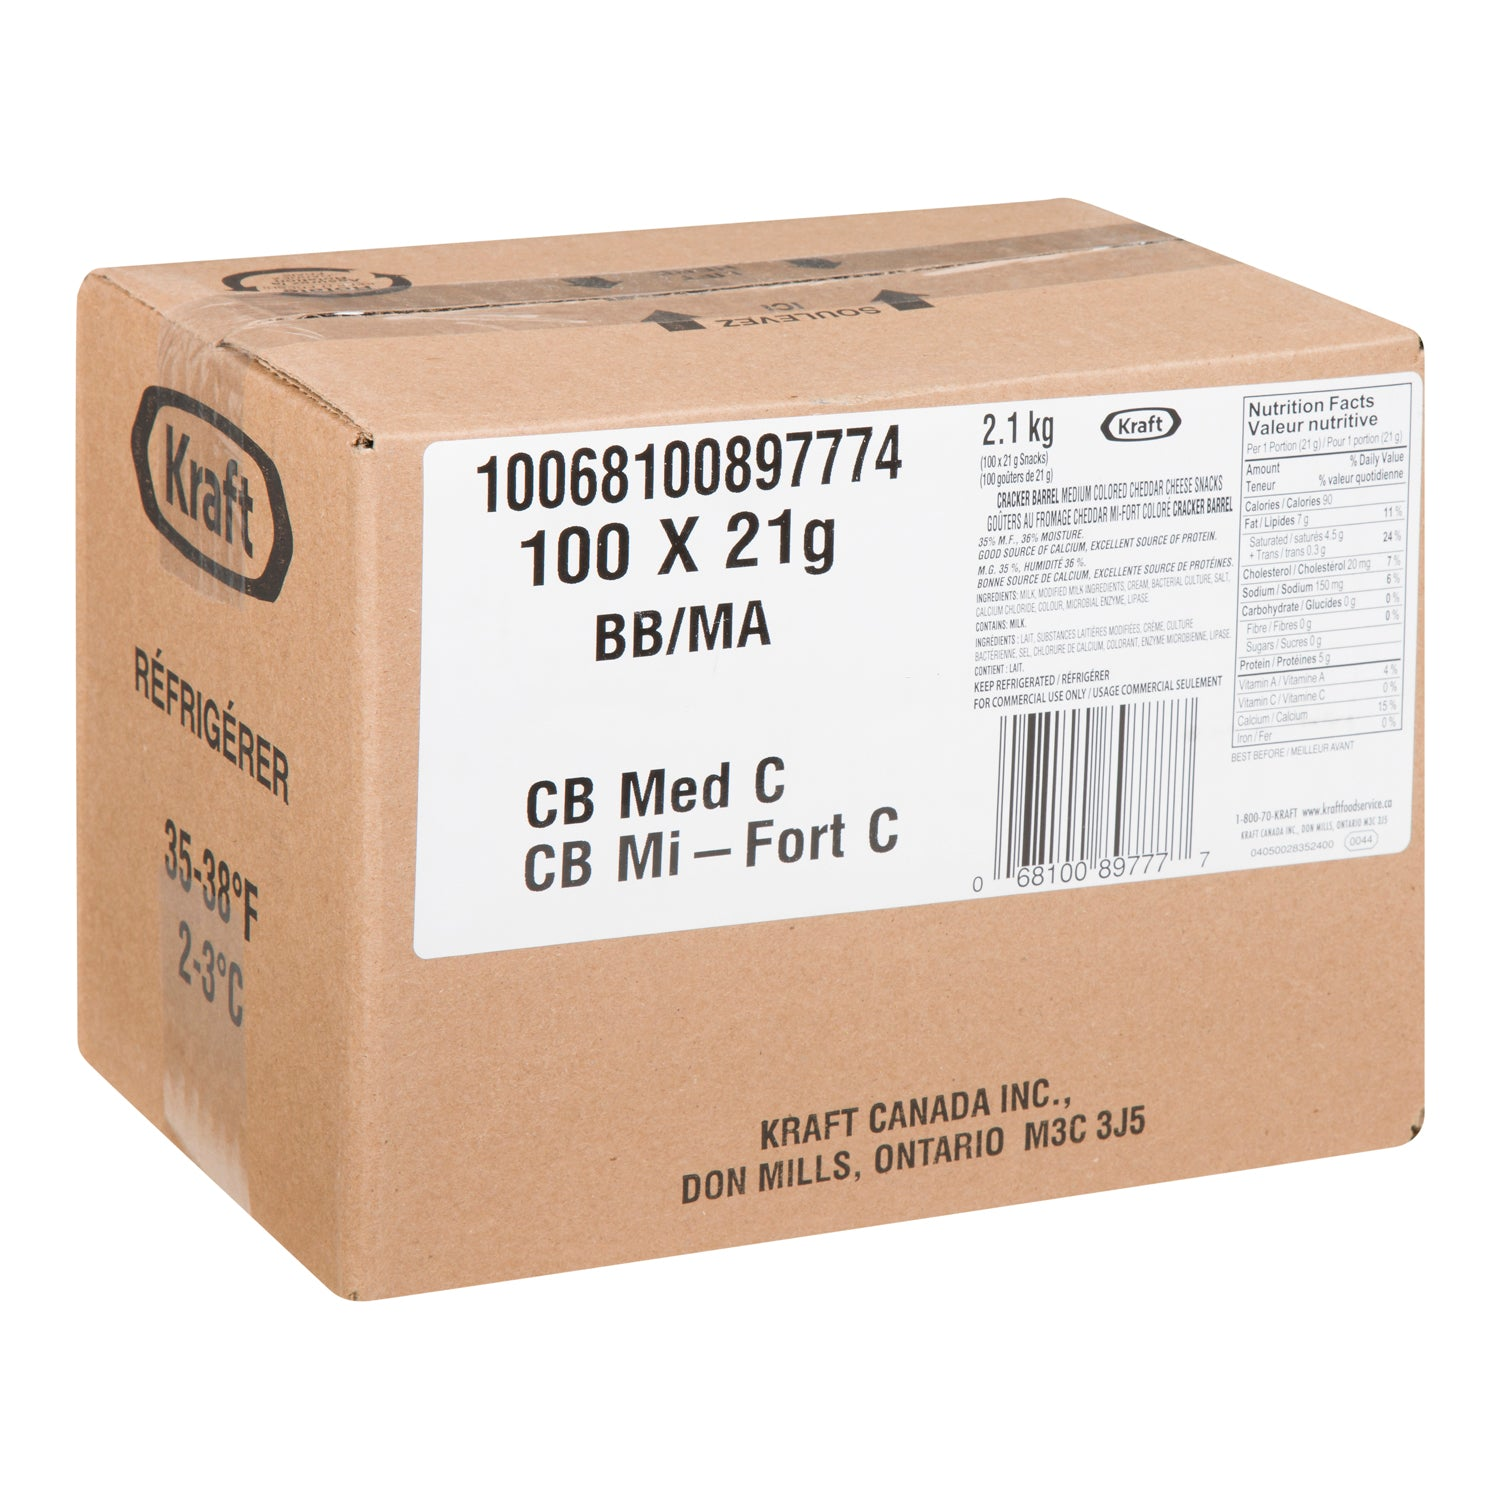 Kraft Medium Cheddar Cheese Packs 21 g - 100 Pack [$0.49/each]